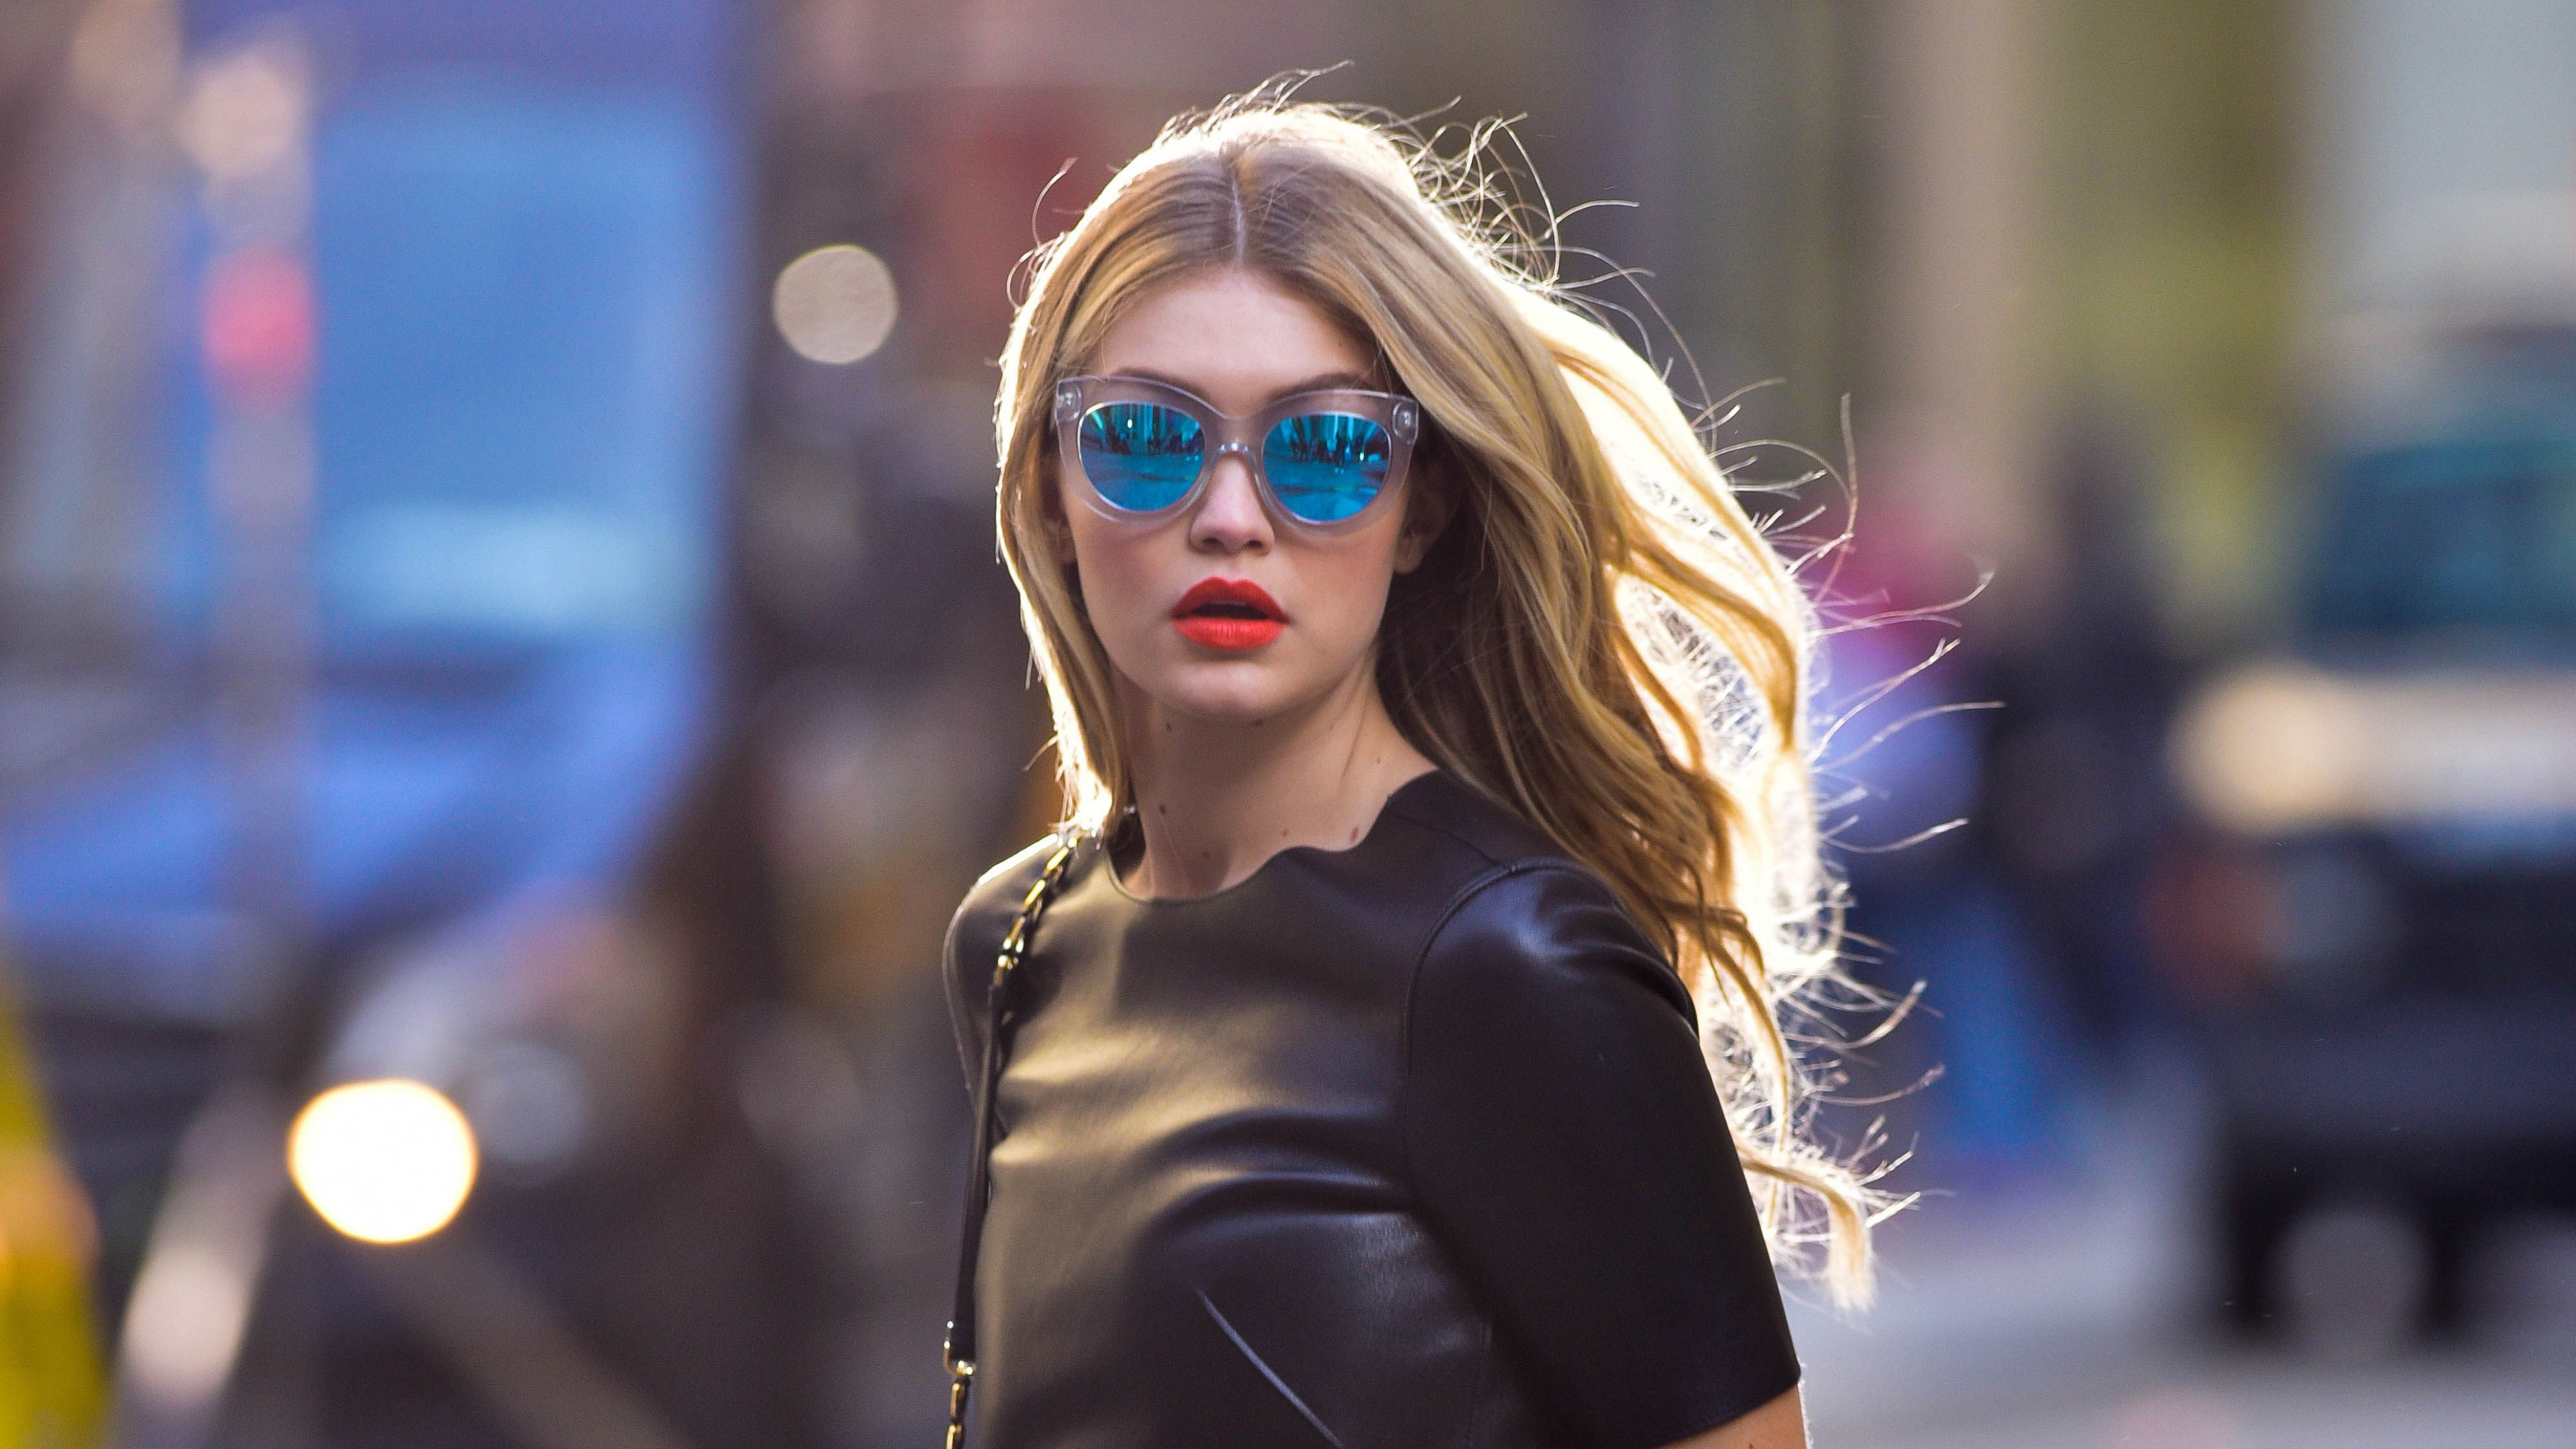 Wallpaper Gigi Hadid in New York